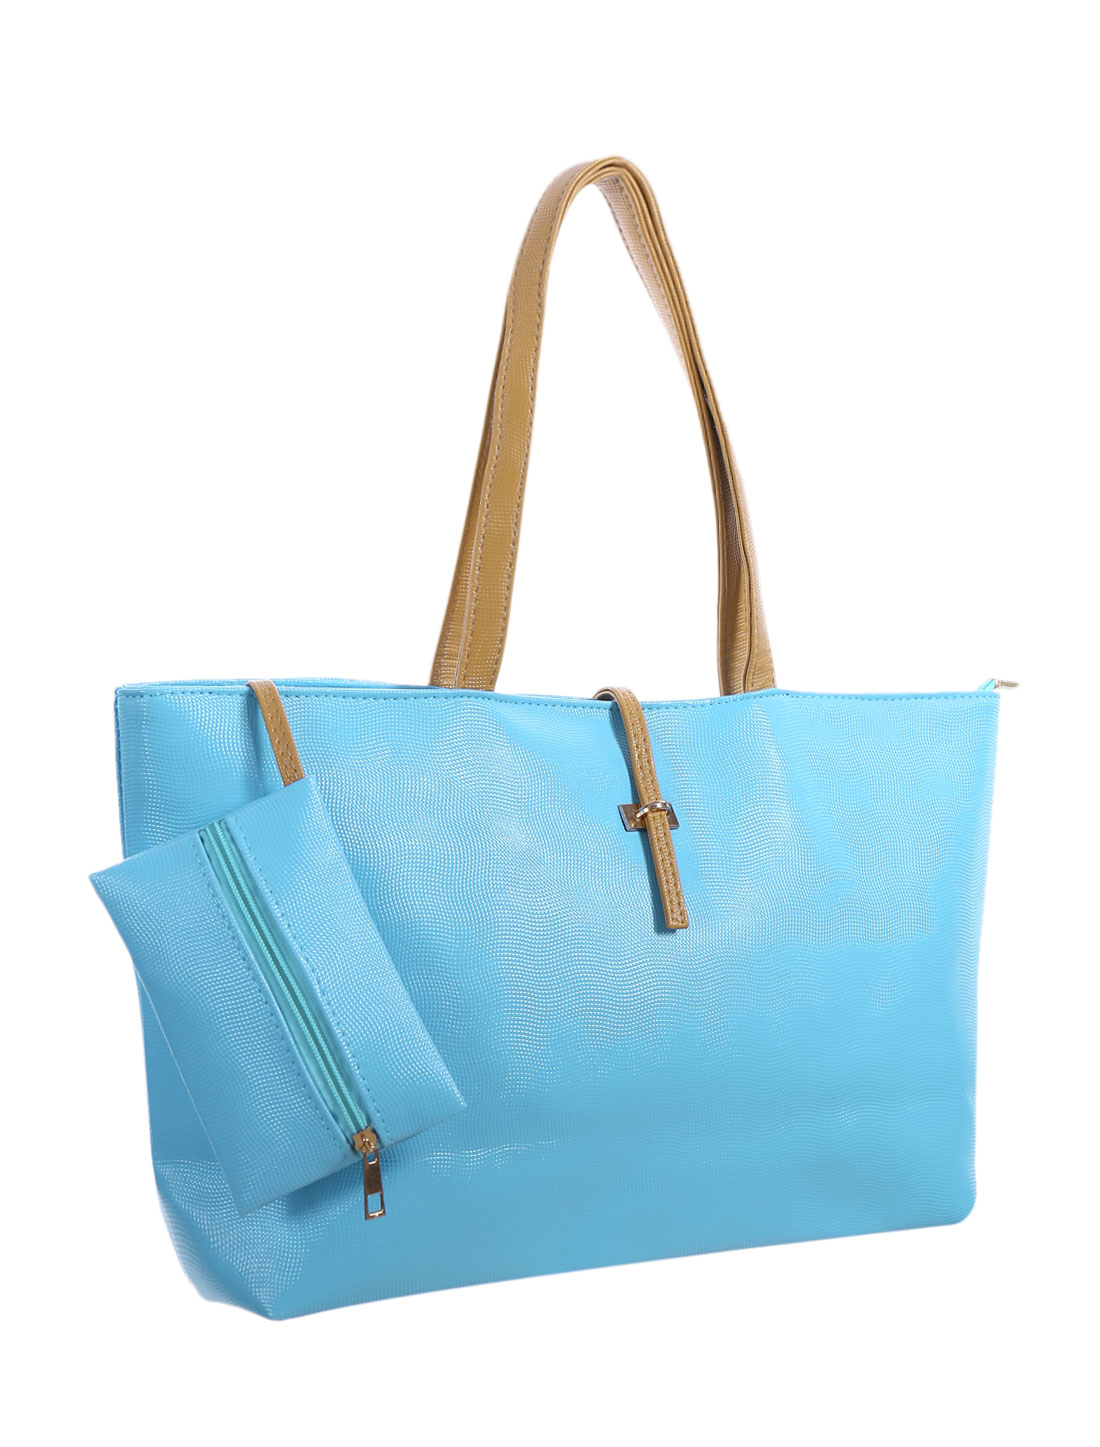 Ladies Two Top Handles Textured Faux Leather Tote w Pouch Light Blue